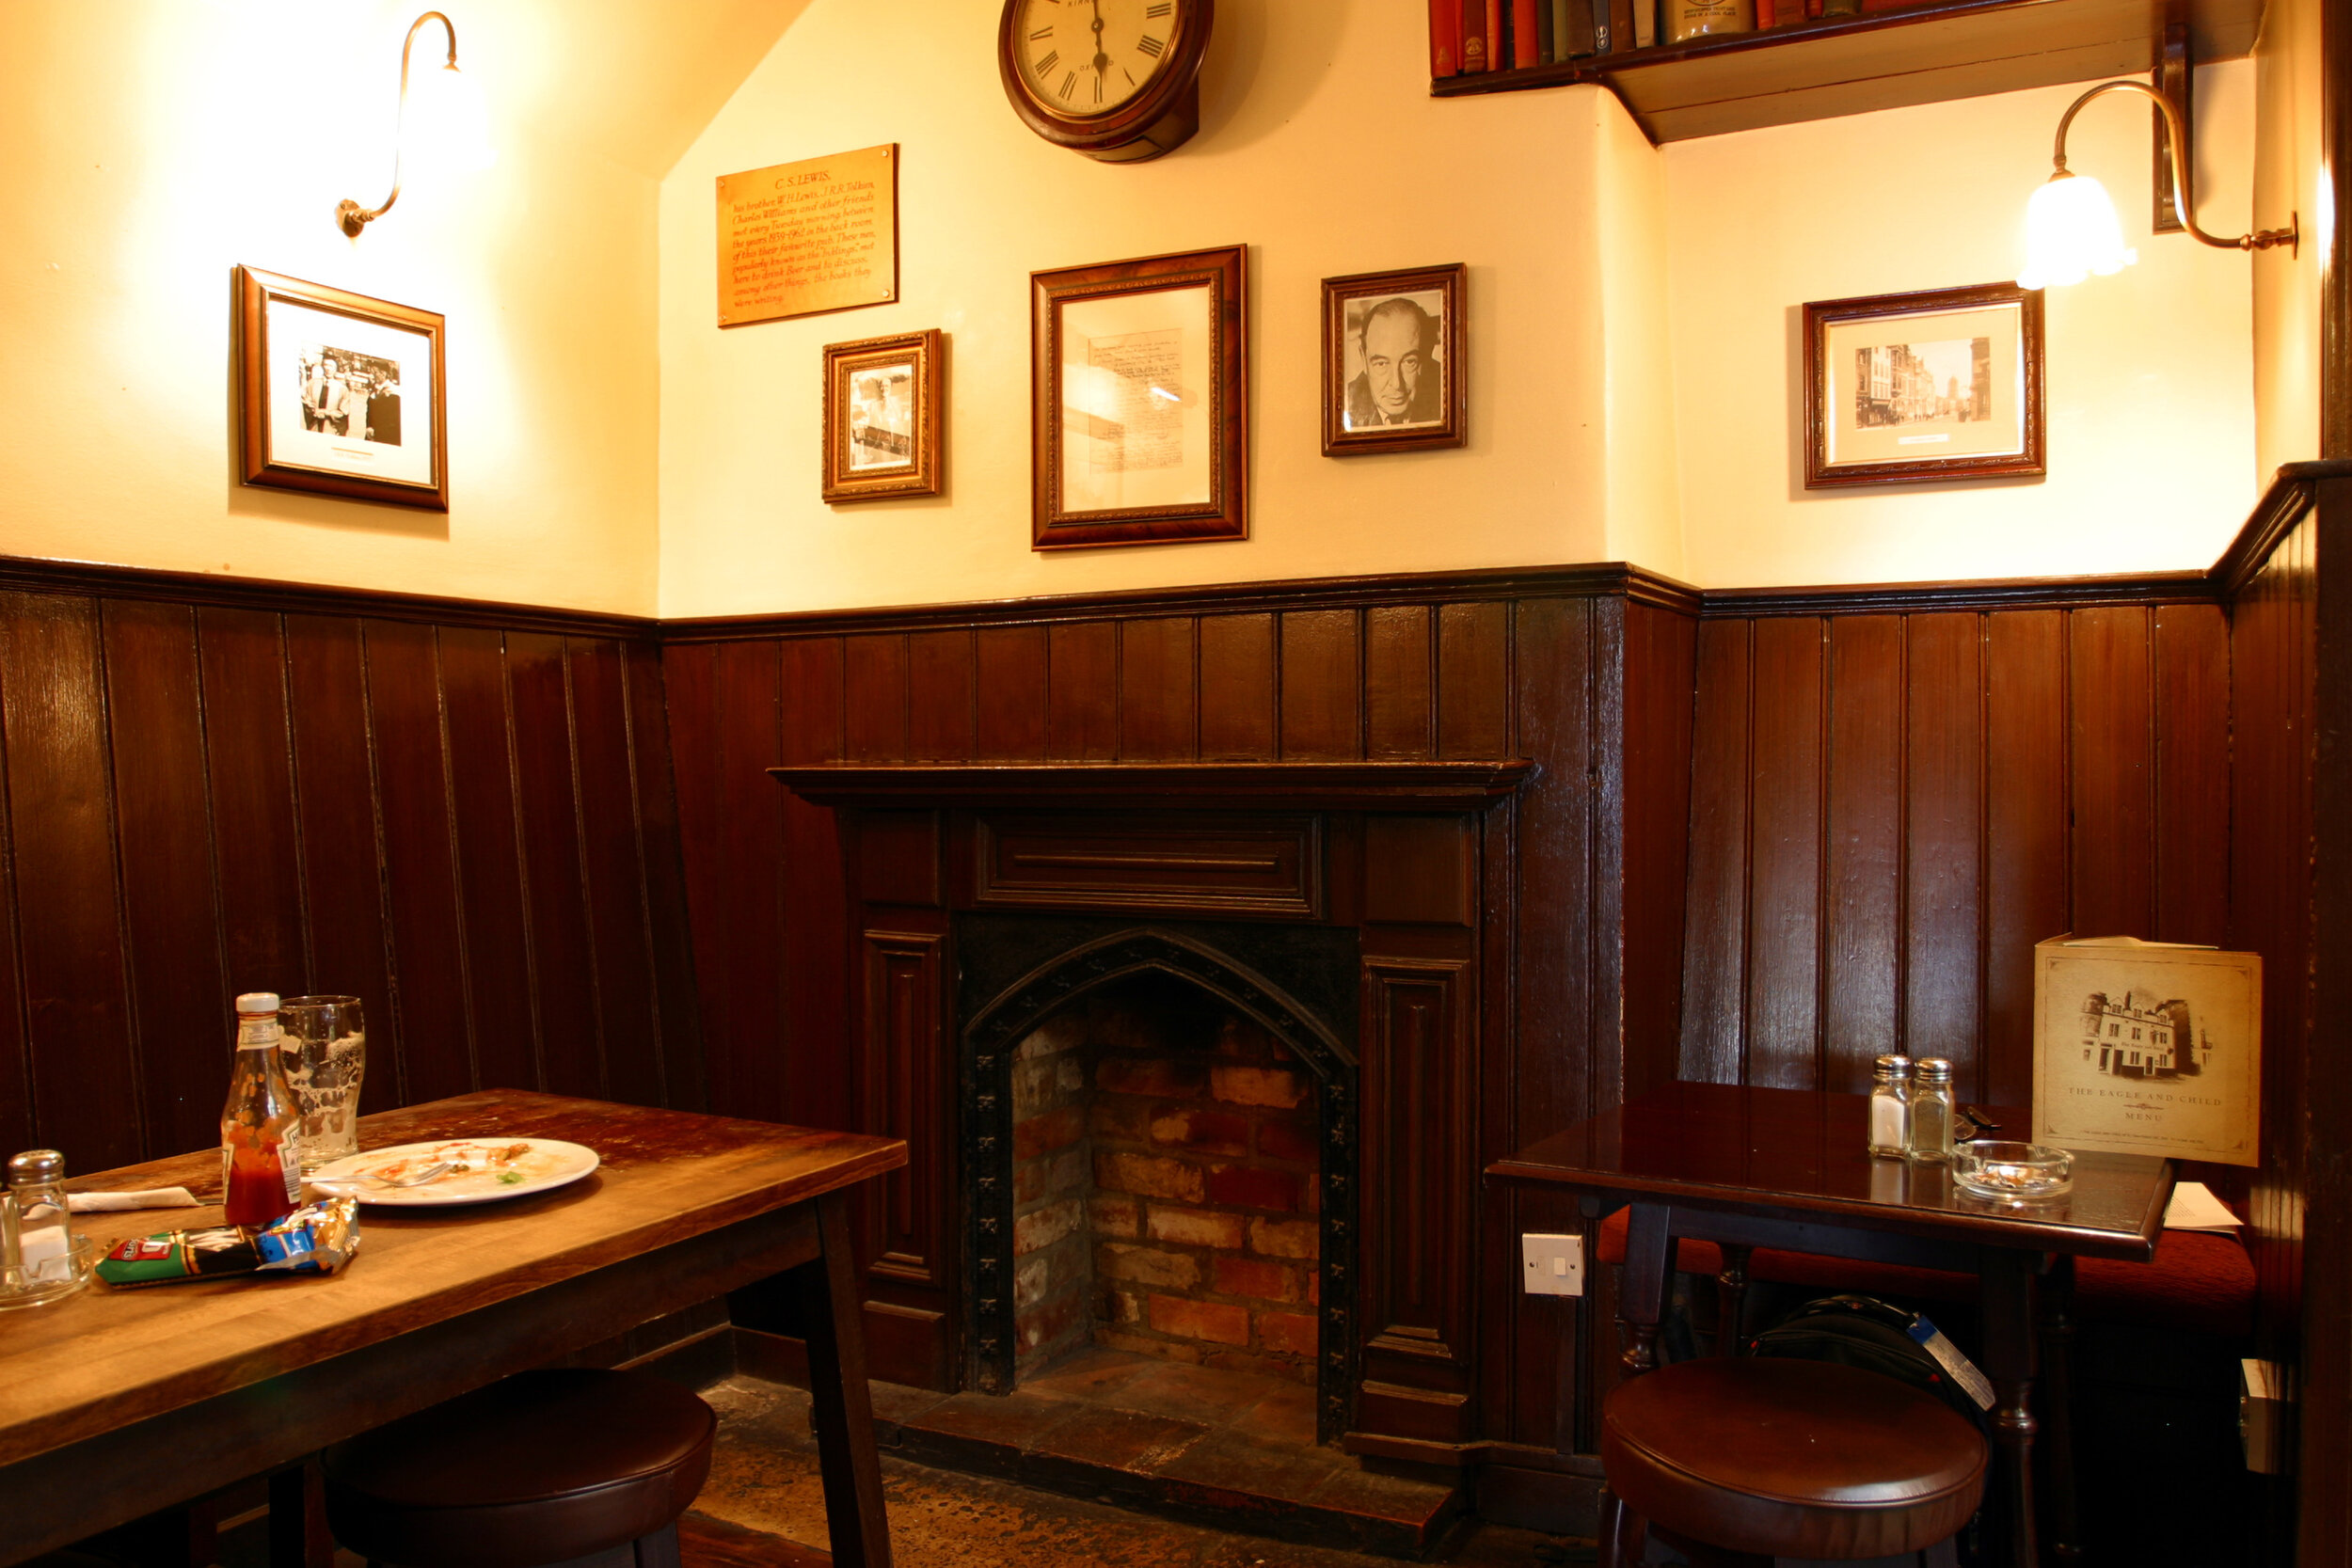 A corner of The Eagle and Child pub, formerly the landlord's sitting-room where the Inklings met. [See photo credit below]